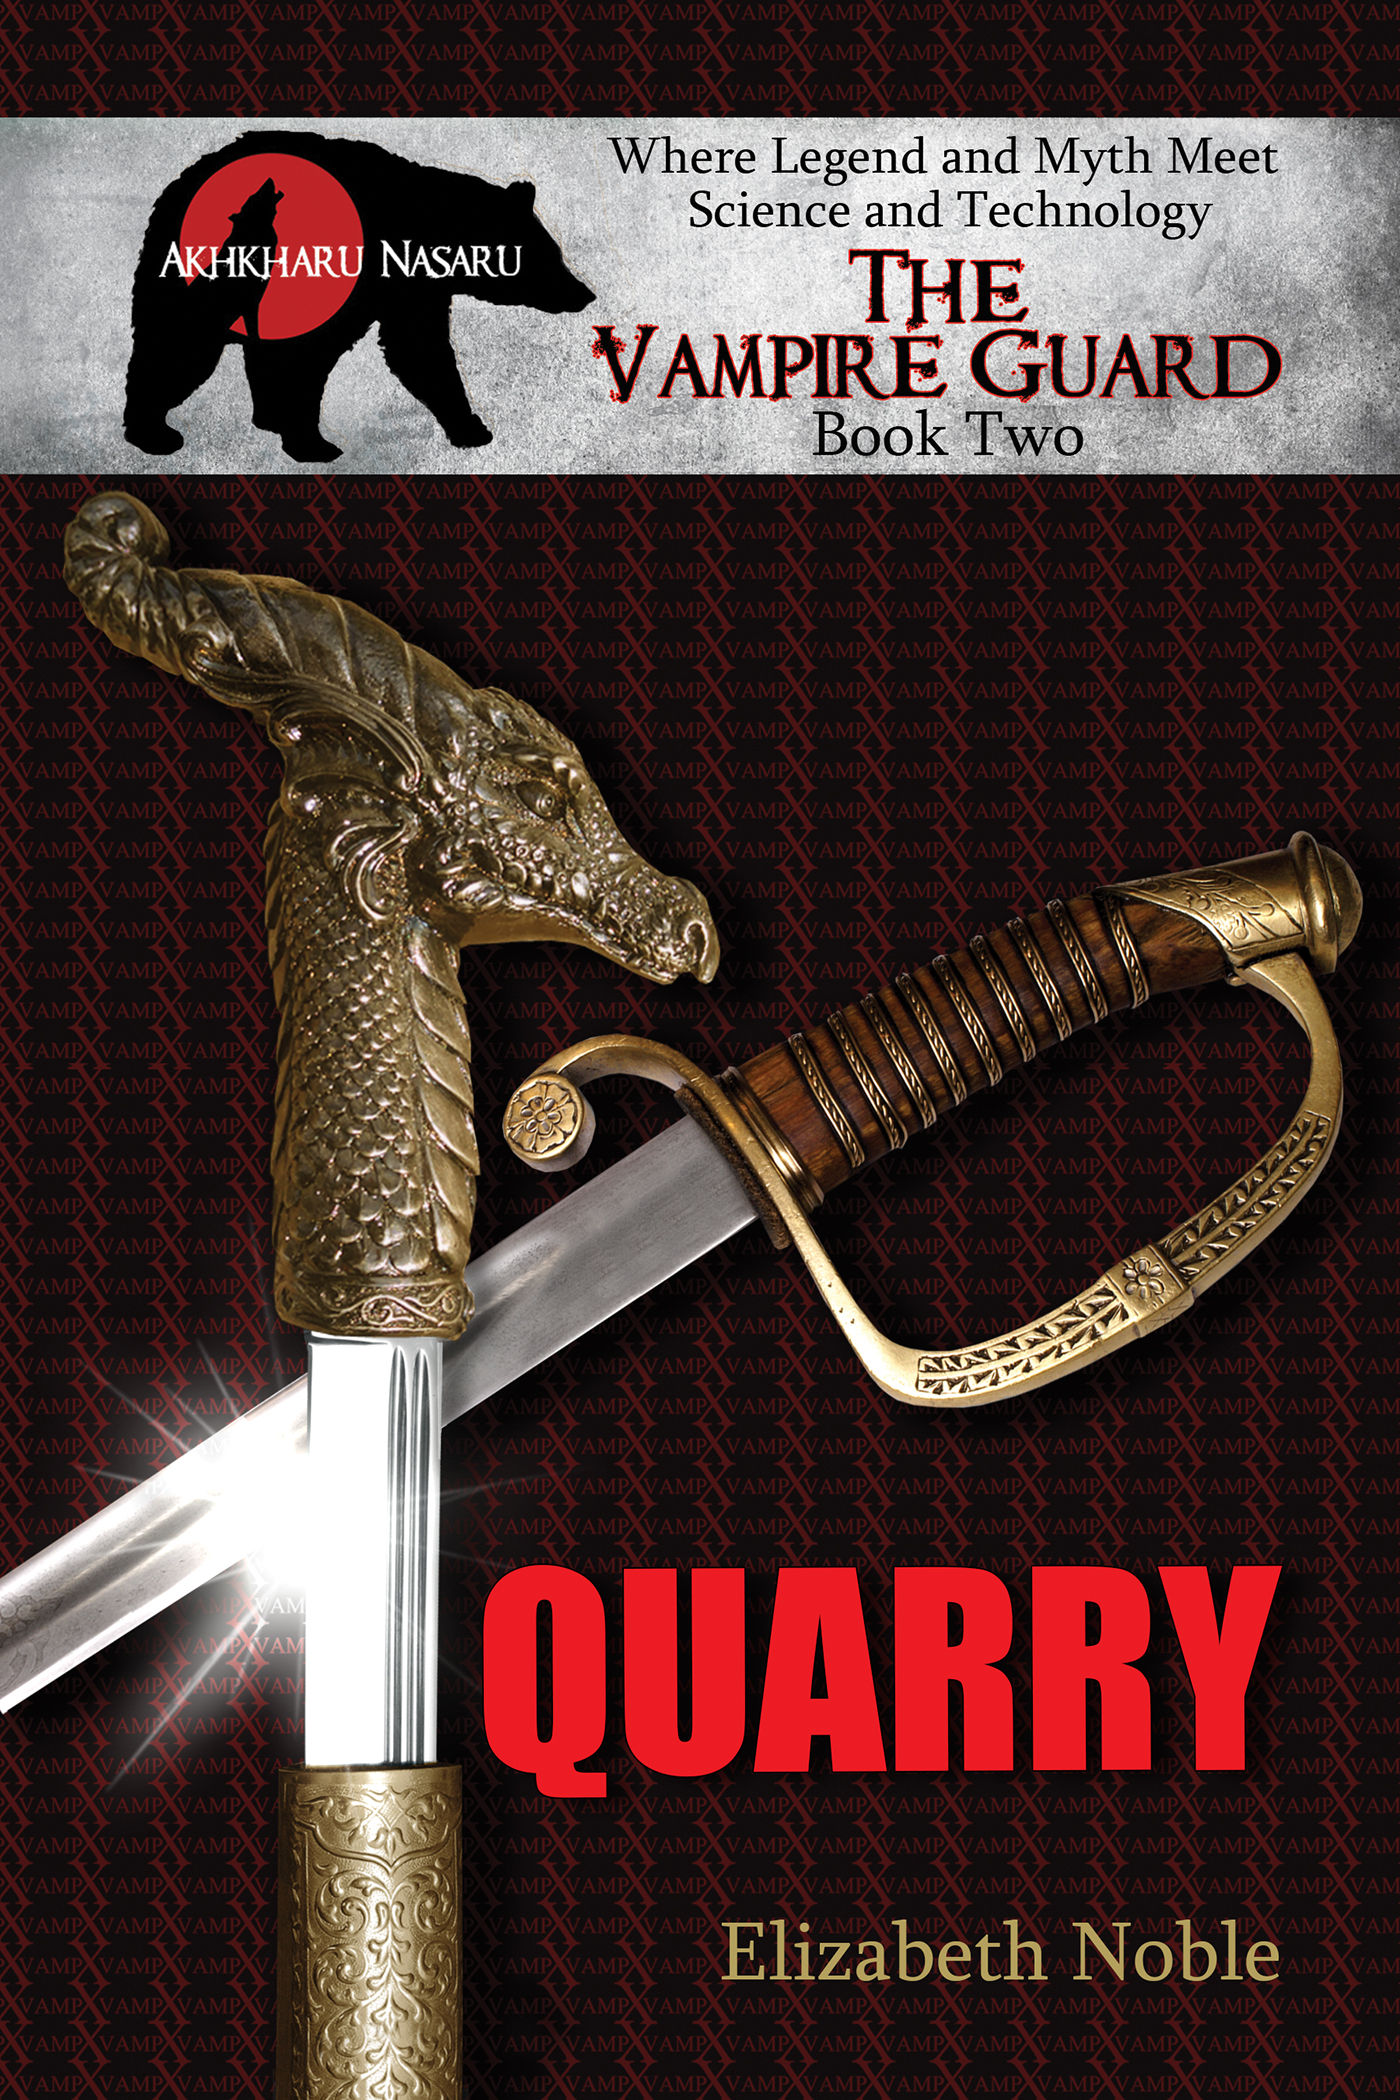 Review: Quarry by Elizabeth Noble